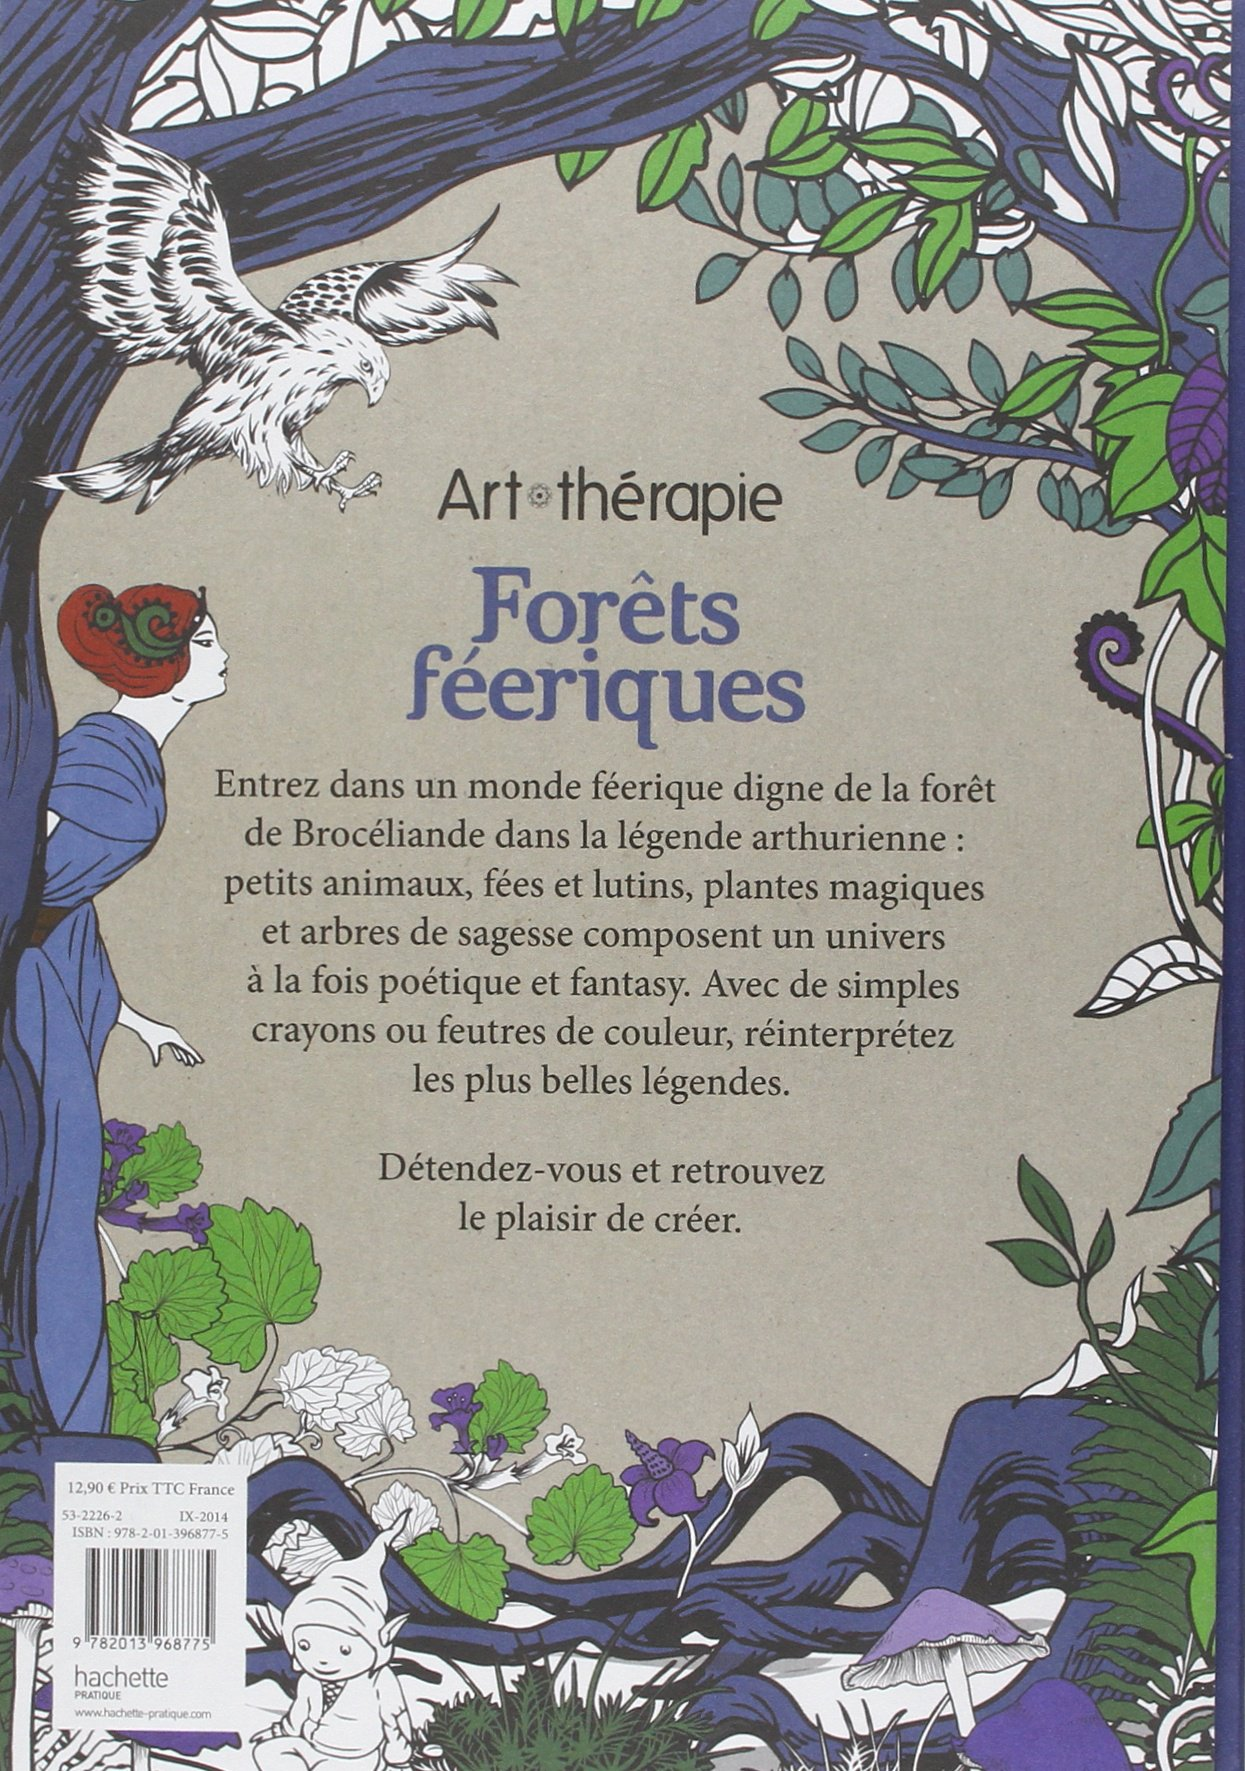 Art therapie Forets feeriques 100 coloriages anti stress French Edition Marthe Mulkey Hachette Amazon Books